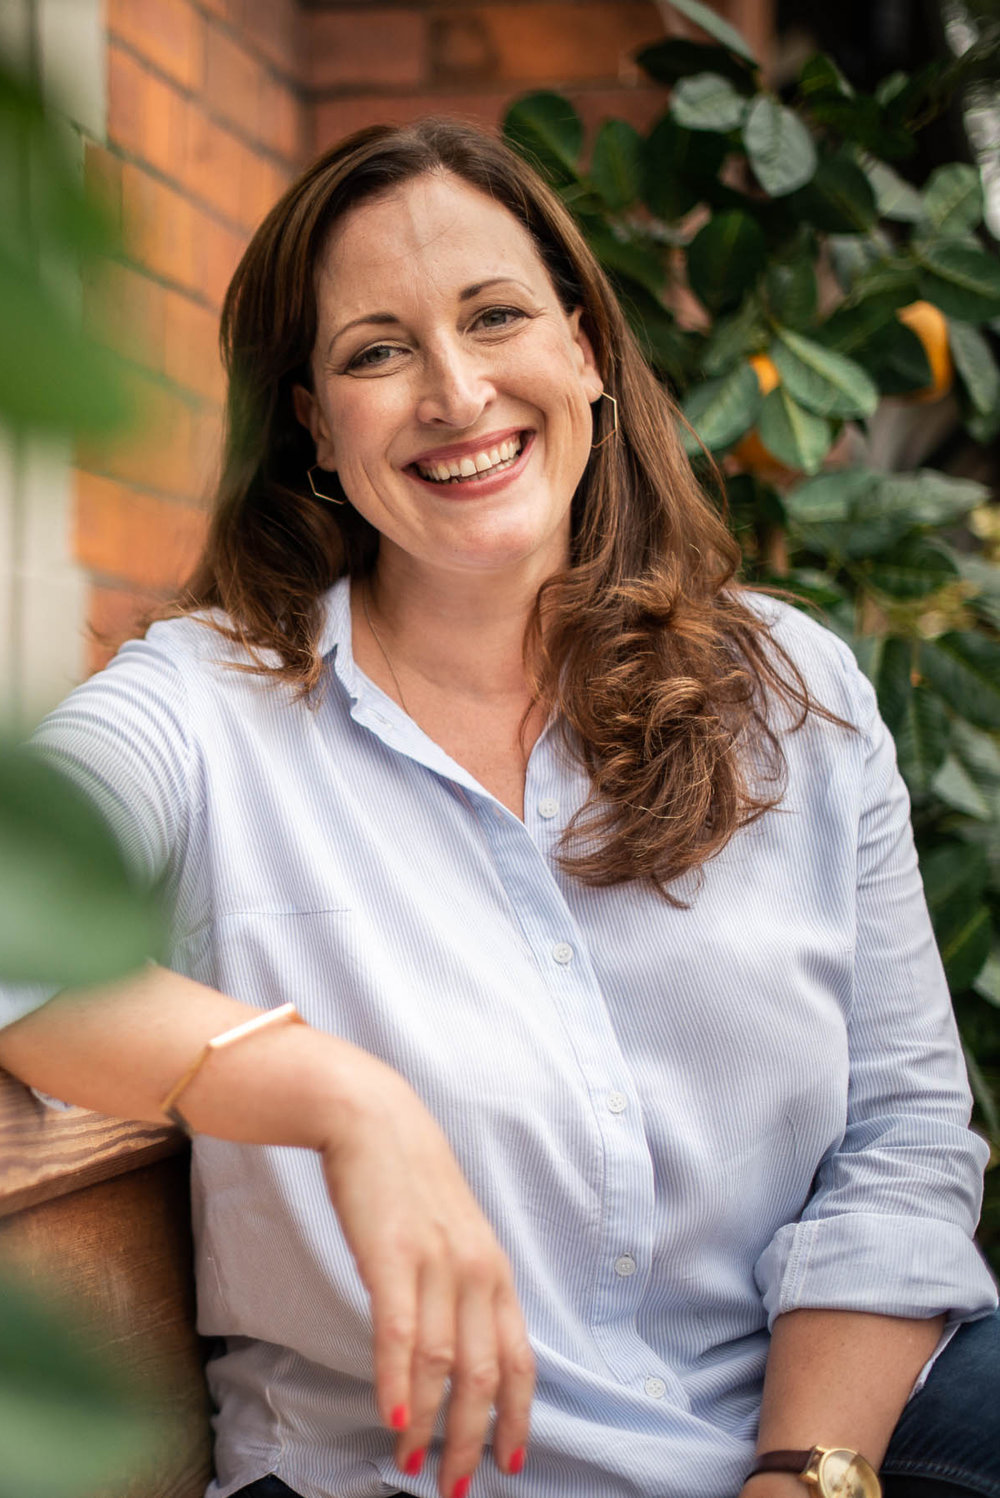 Jane Moore, Co-founder, Queen Bee PA